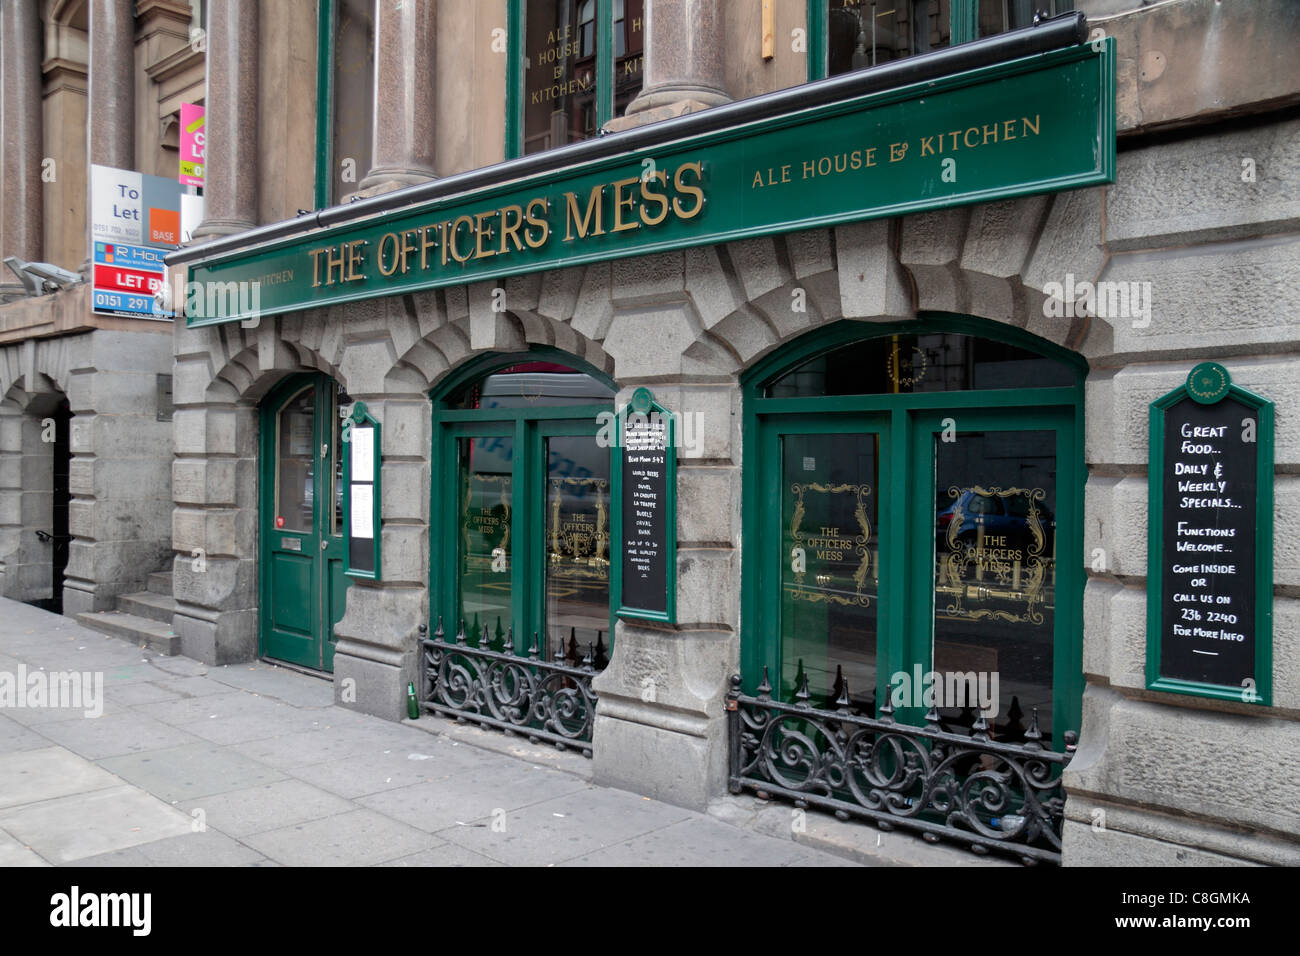 The Officers Mess Ale House (public house or pub) on Victoria Street, Liverpool town centre, UK. - Stock Image